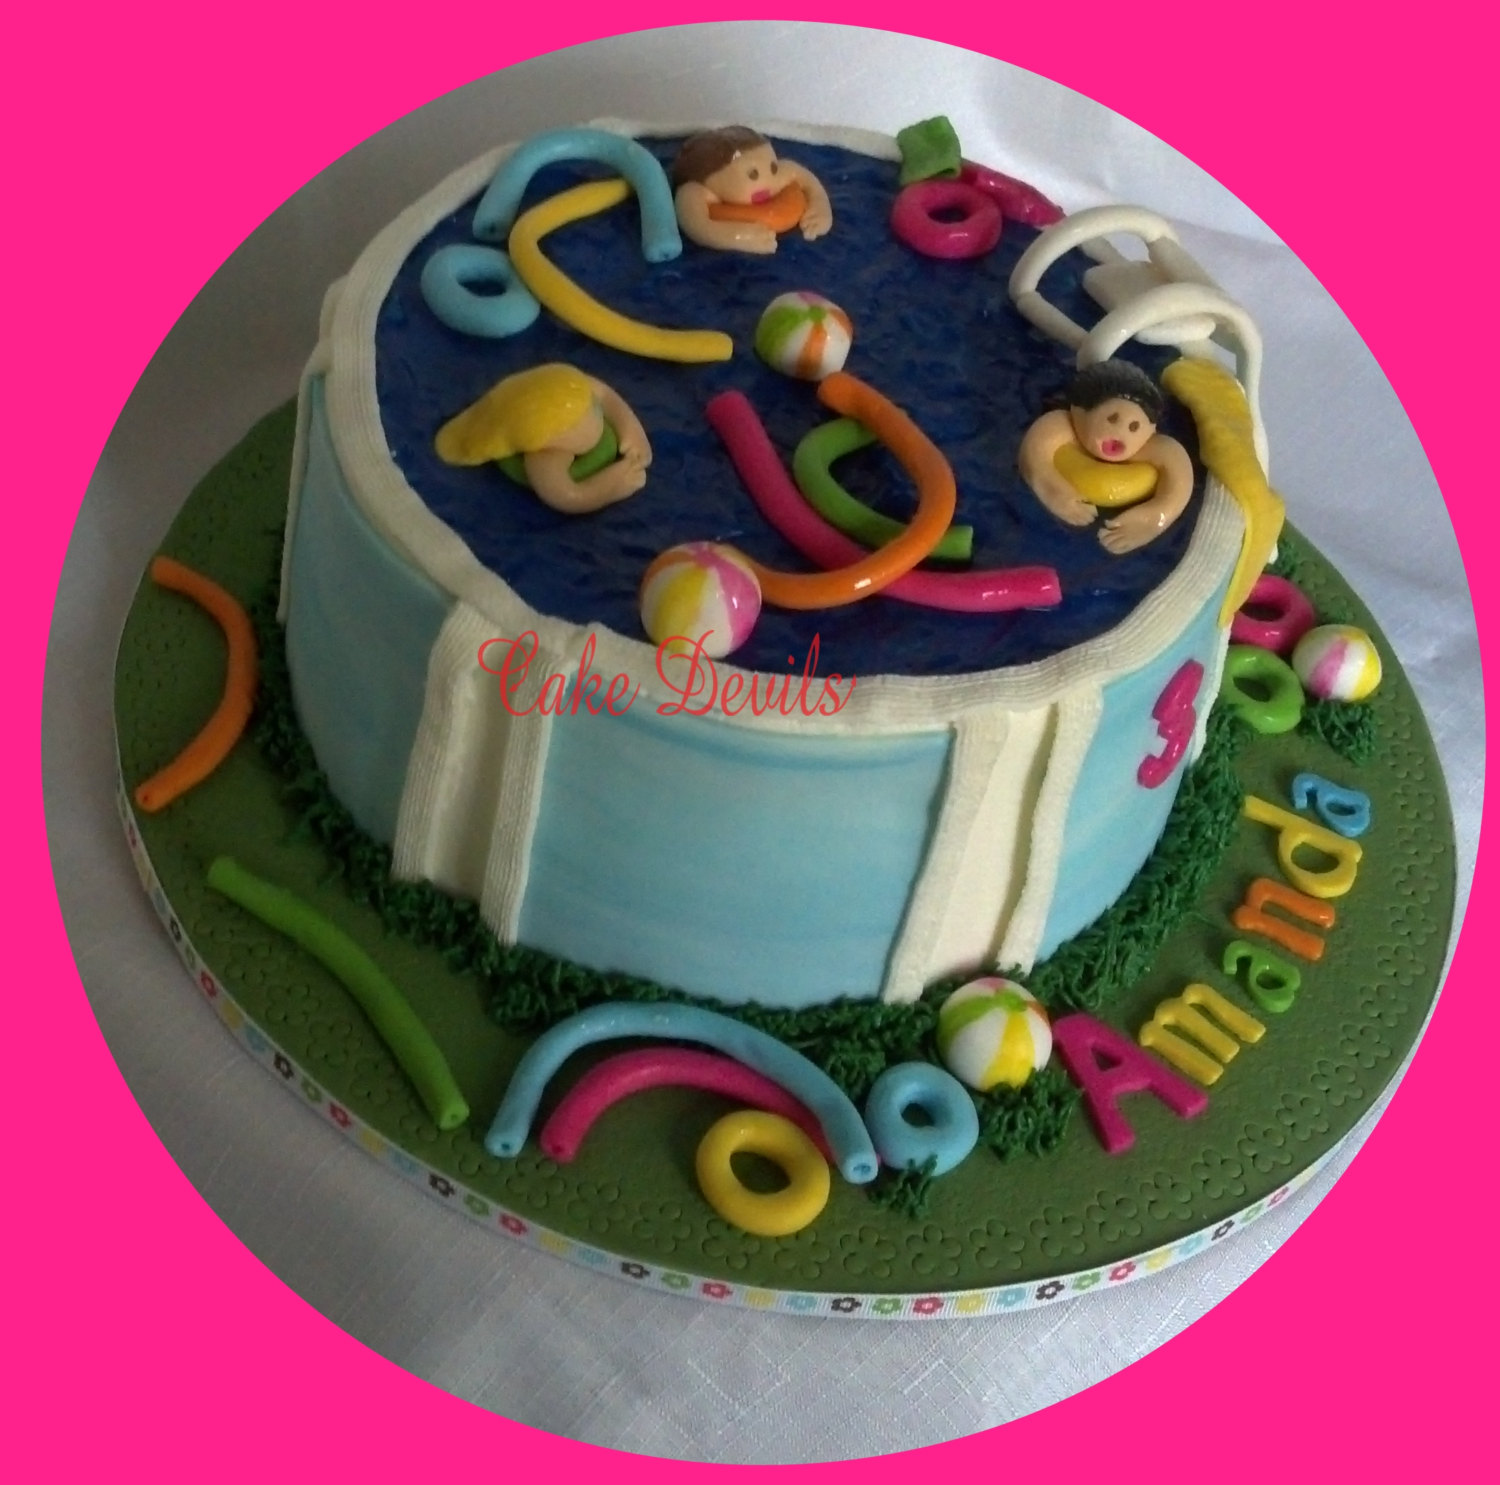 Edible Cake Decorations Beach : Pool Party Cake Topper Kit - Fondant, Handmade Edible ...